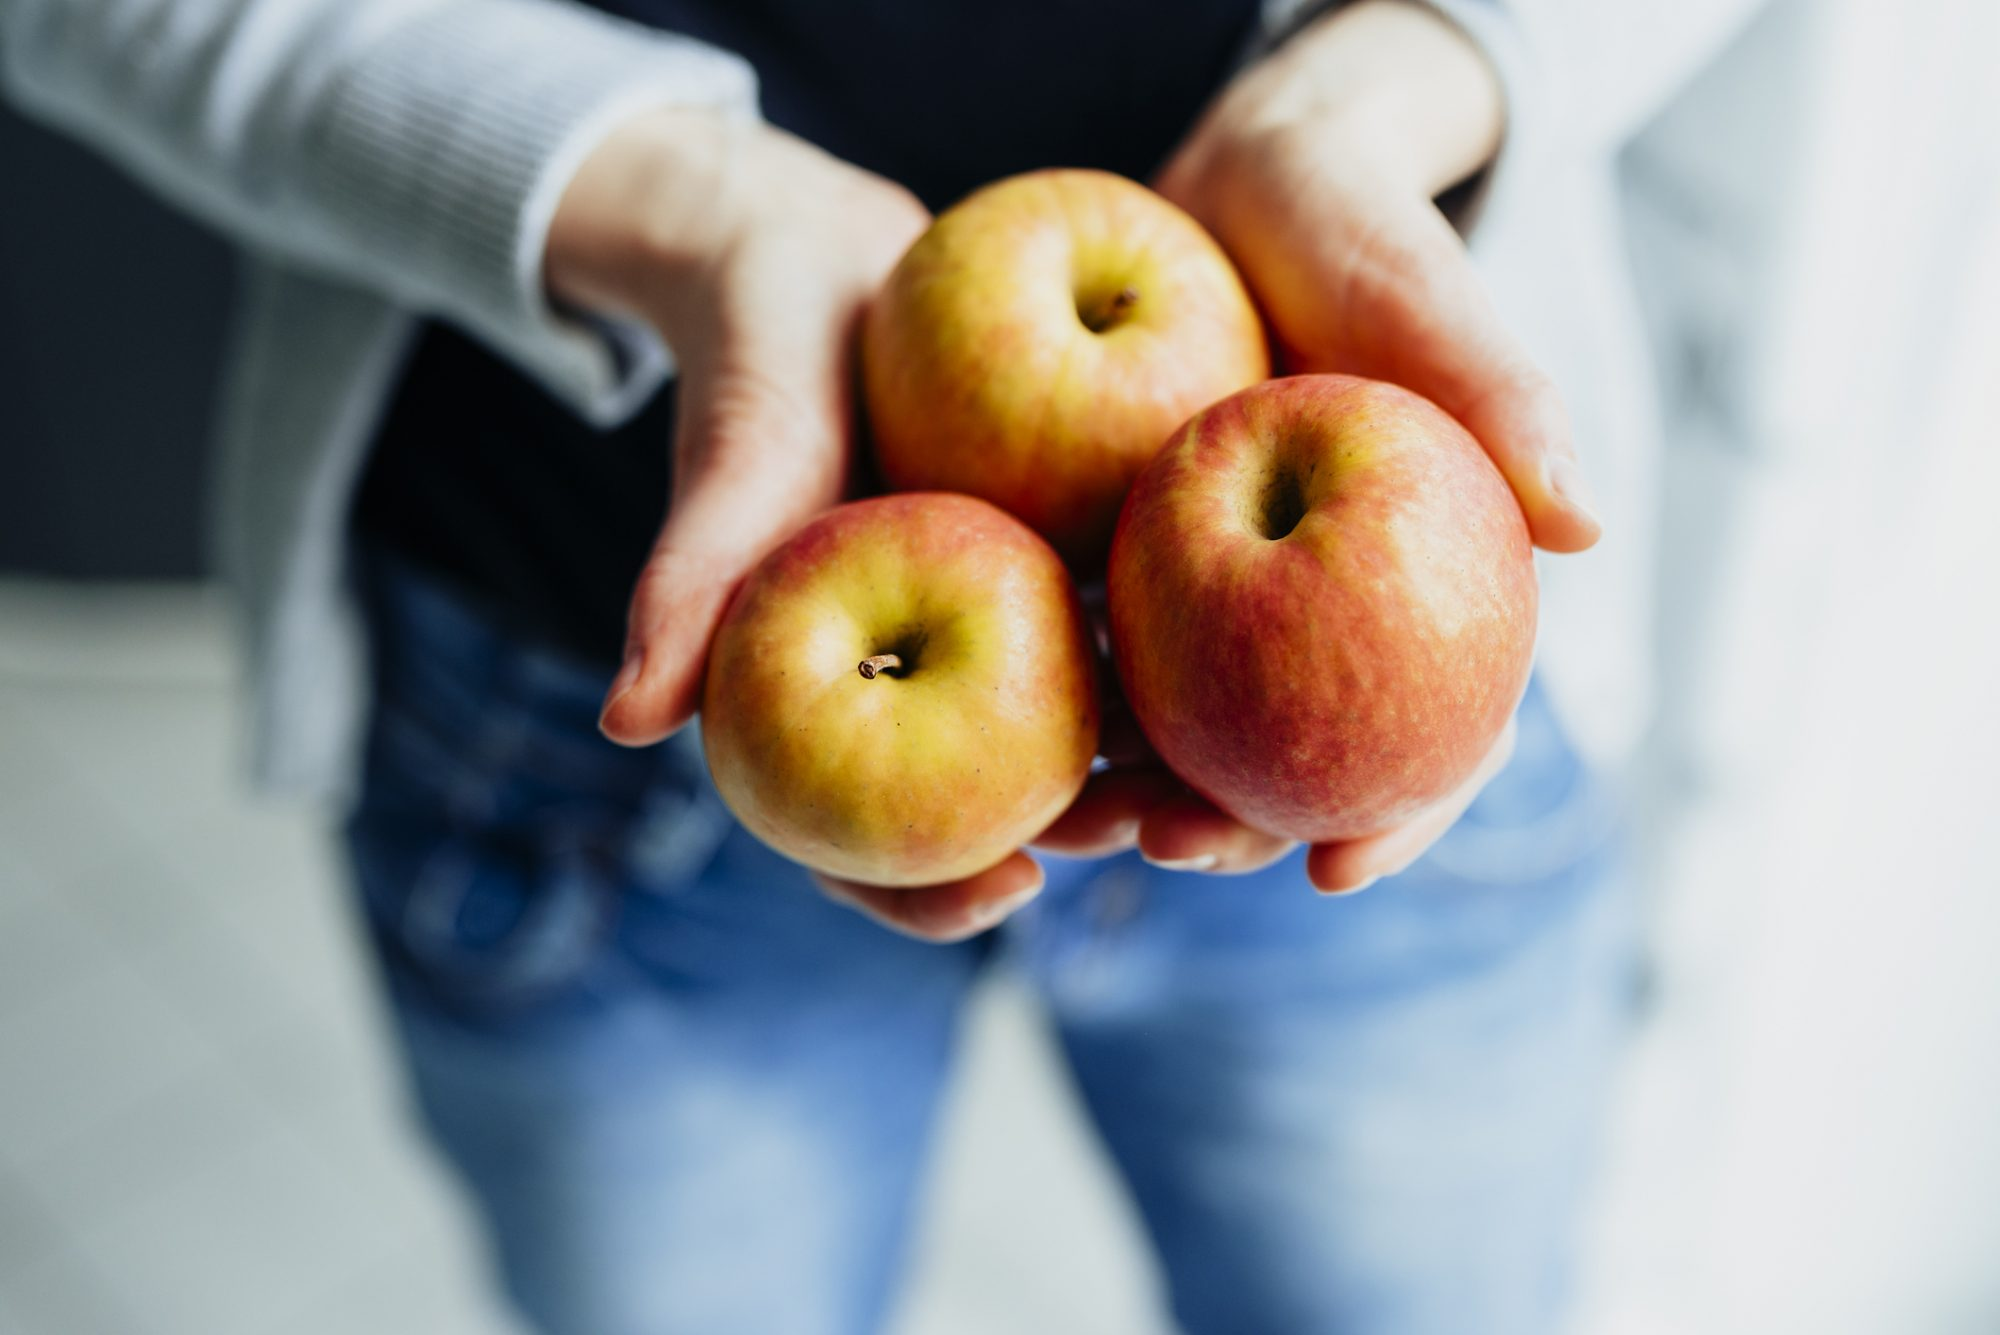 Hand Holding Apples